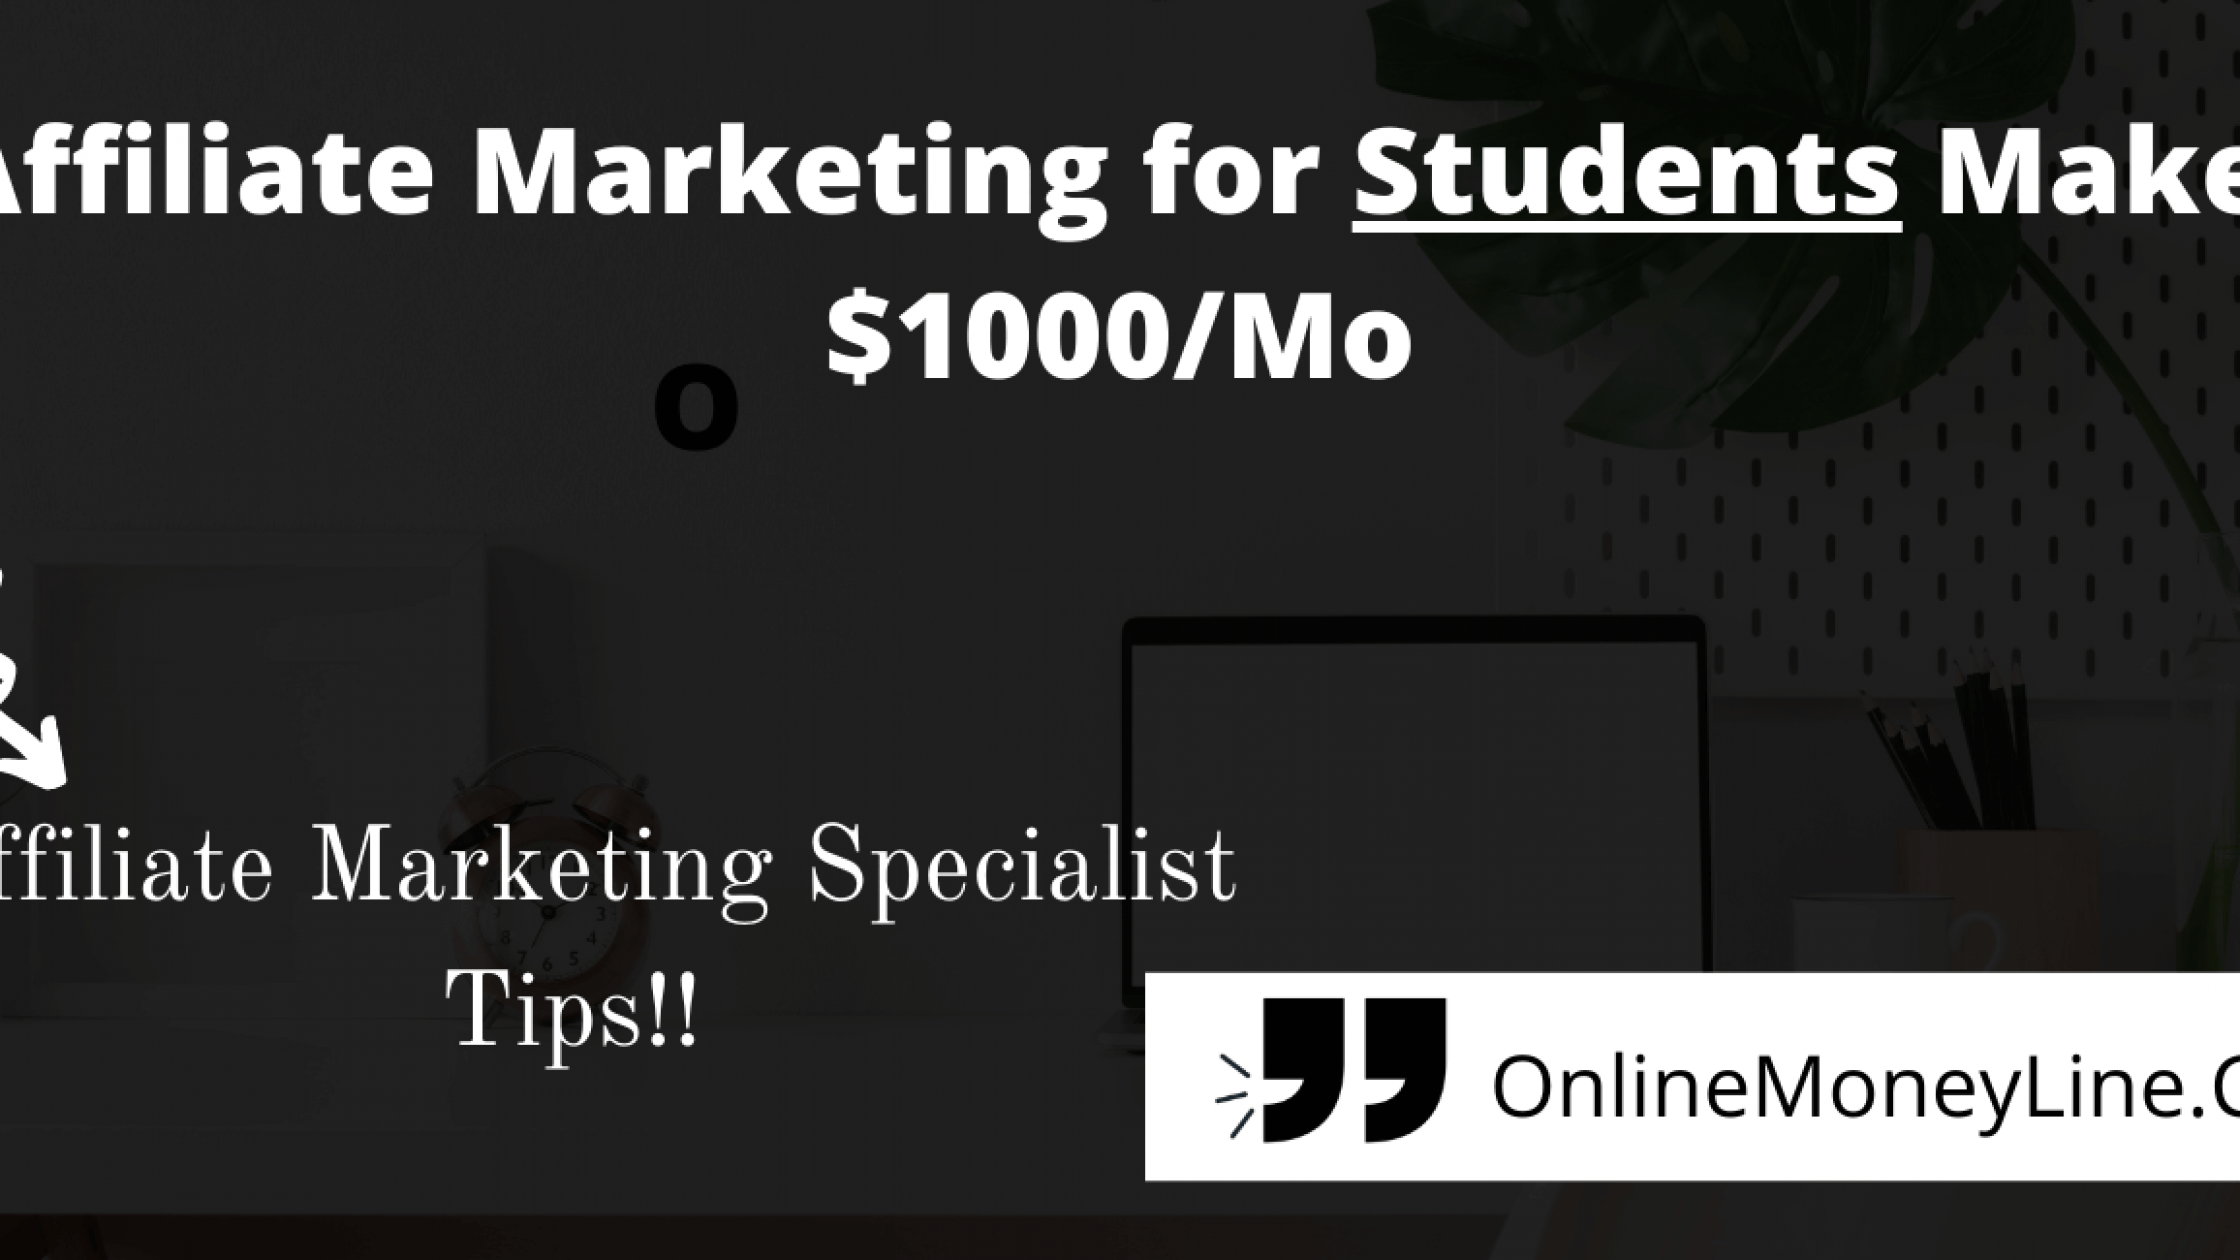 Affiliate Marketing for Students Make – $1000/Mo